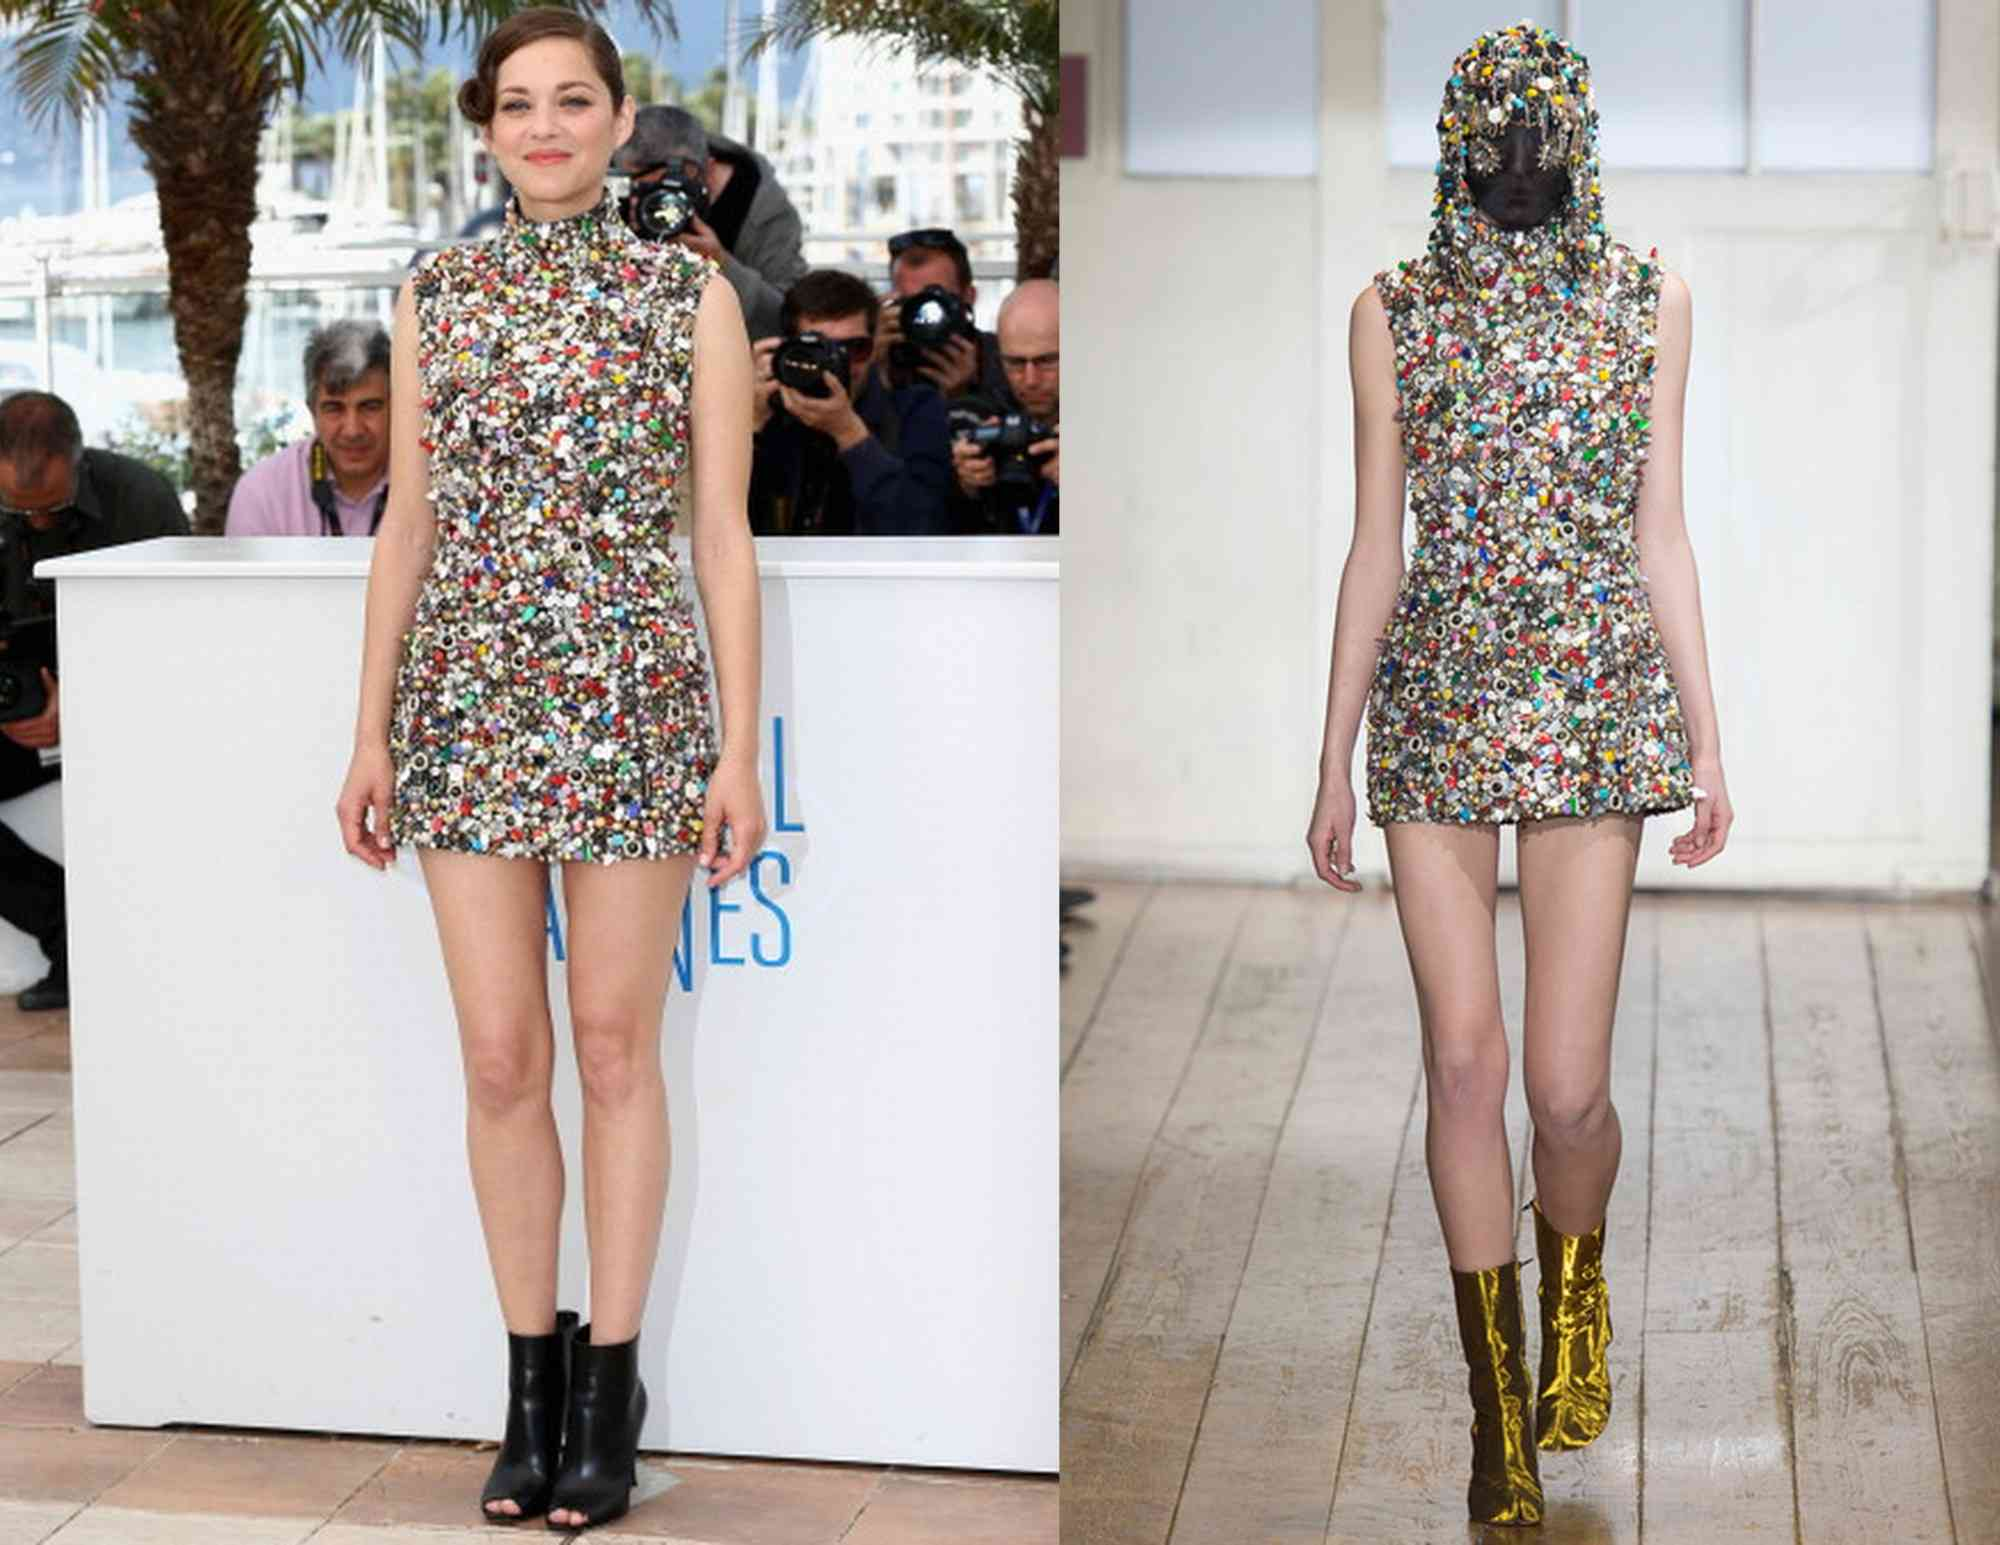 Marion-Cotillard-Maison-Martin-Margiela-Couture-Two-Days-One-Night-2014-Cannes-Film-Festival